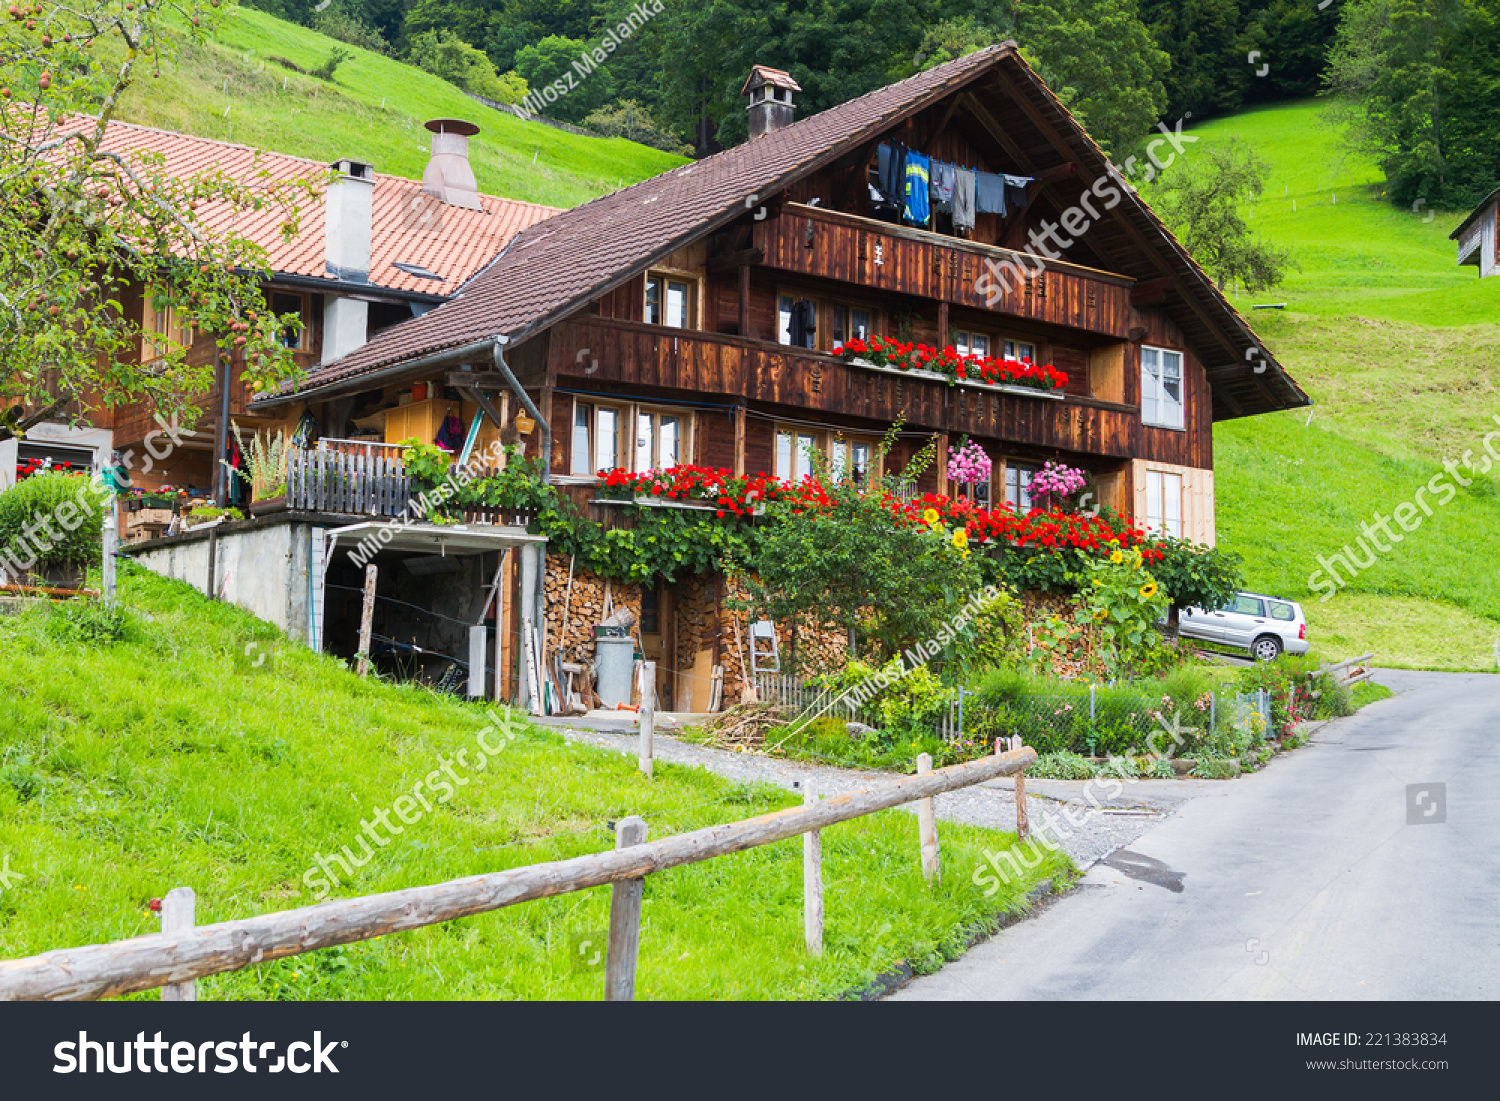 Typical swiss wood house decorations flowers stock photo for Swiss homes